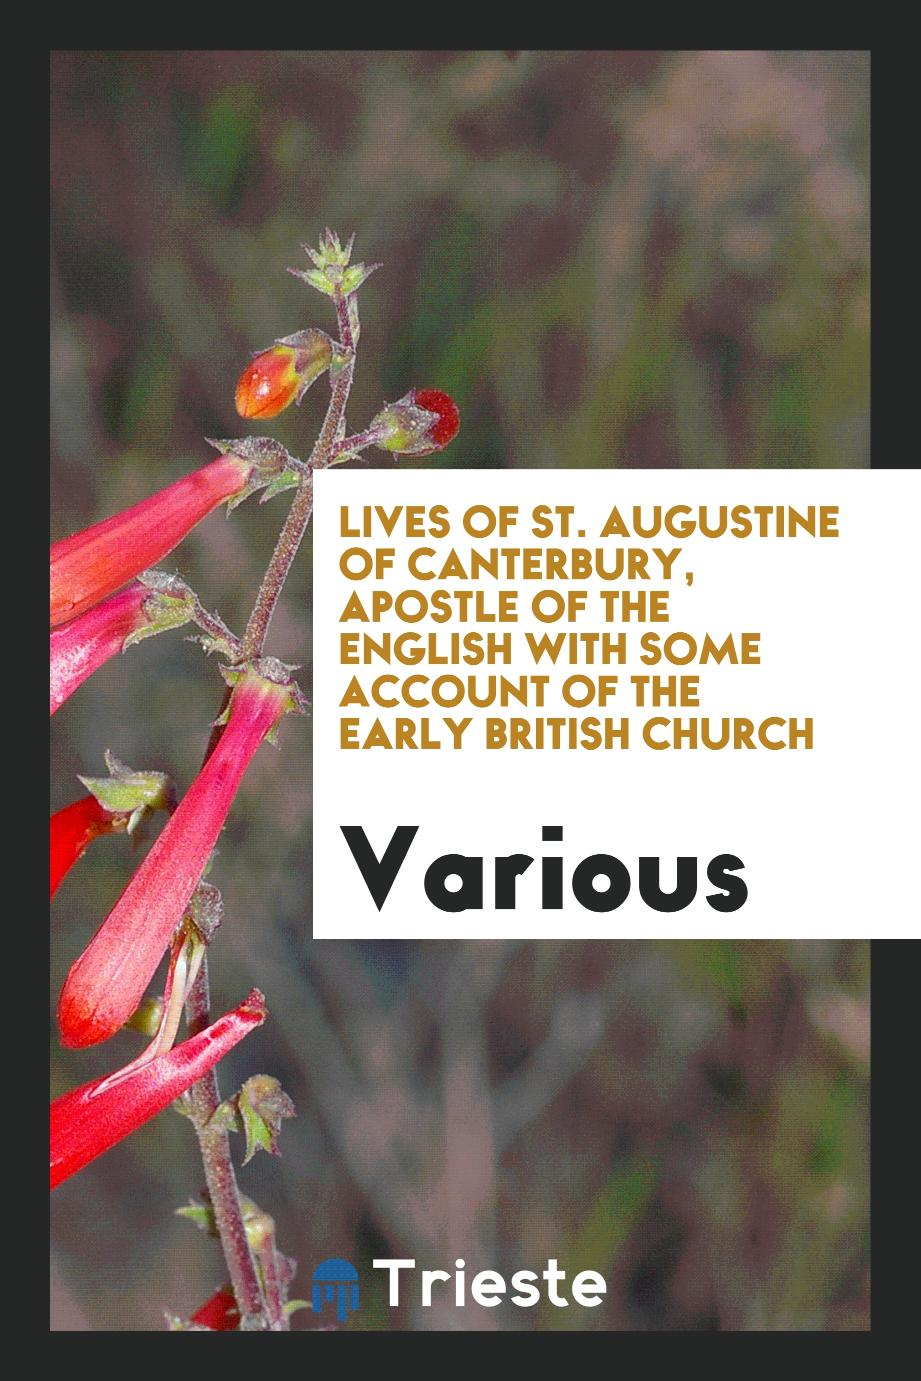 Lives of St. Augustine of Canterbury, Apostle of the English with some Account of the Early British Church